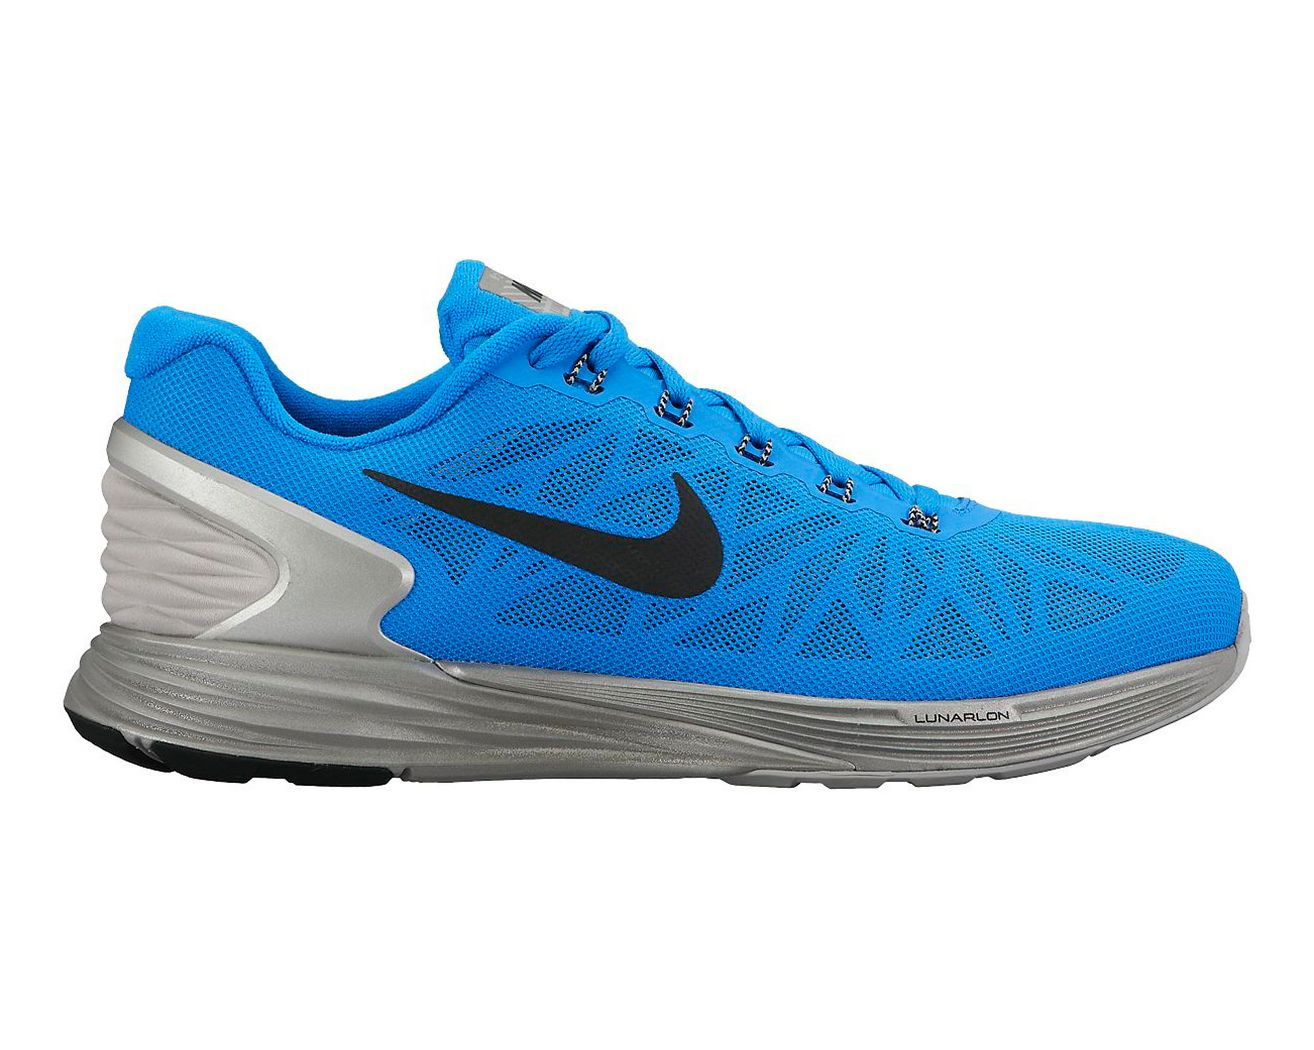 064fe2883f7 ... sports Mens Nike LunarGlide 6 Flash Running Shoe at Road Runner Spo Nike  LunarEclipse 4 Womens ...